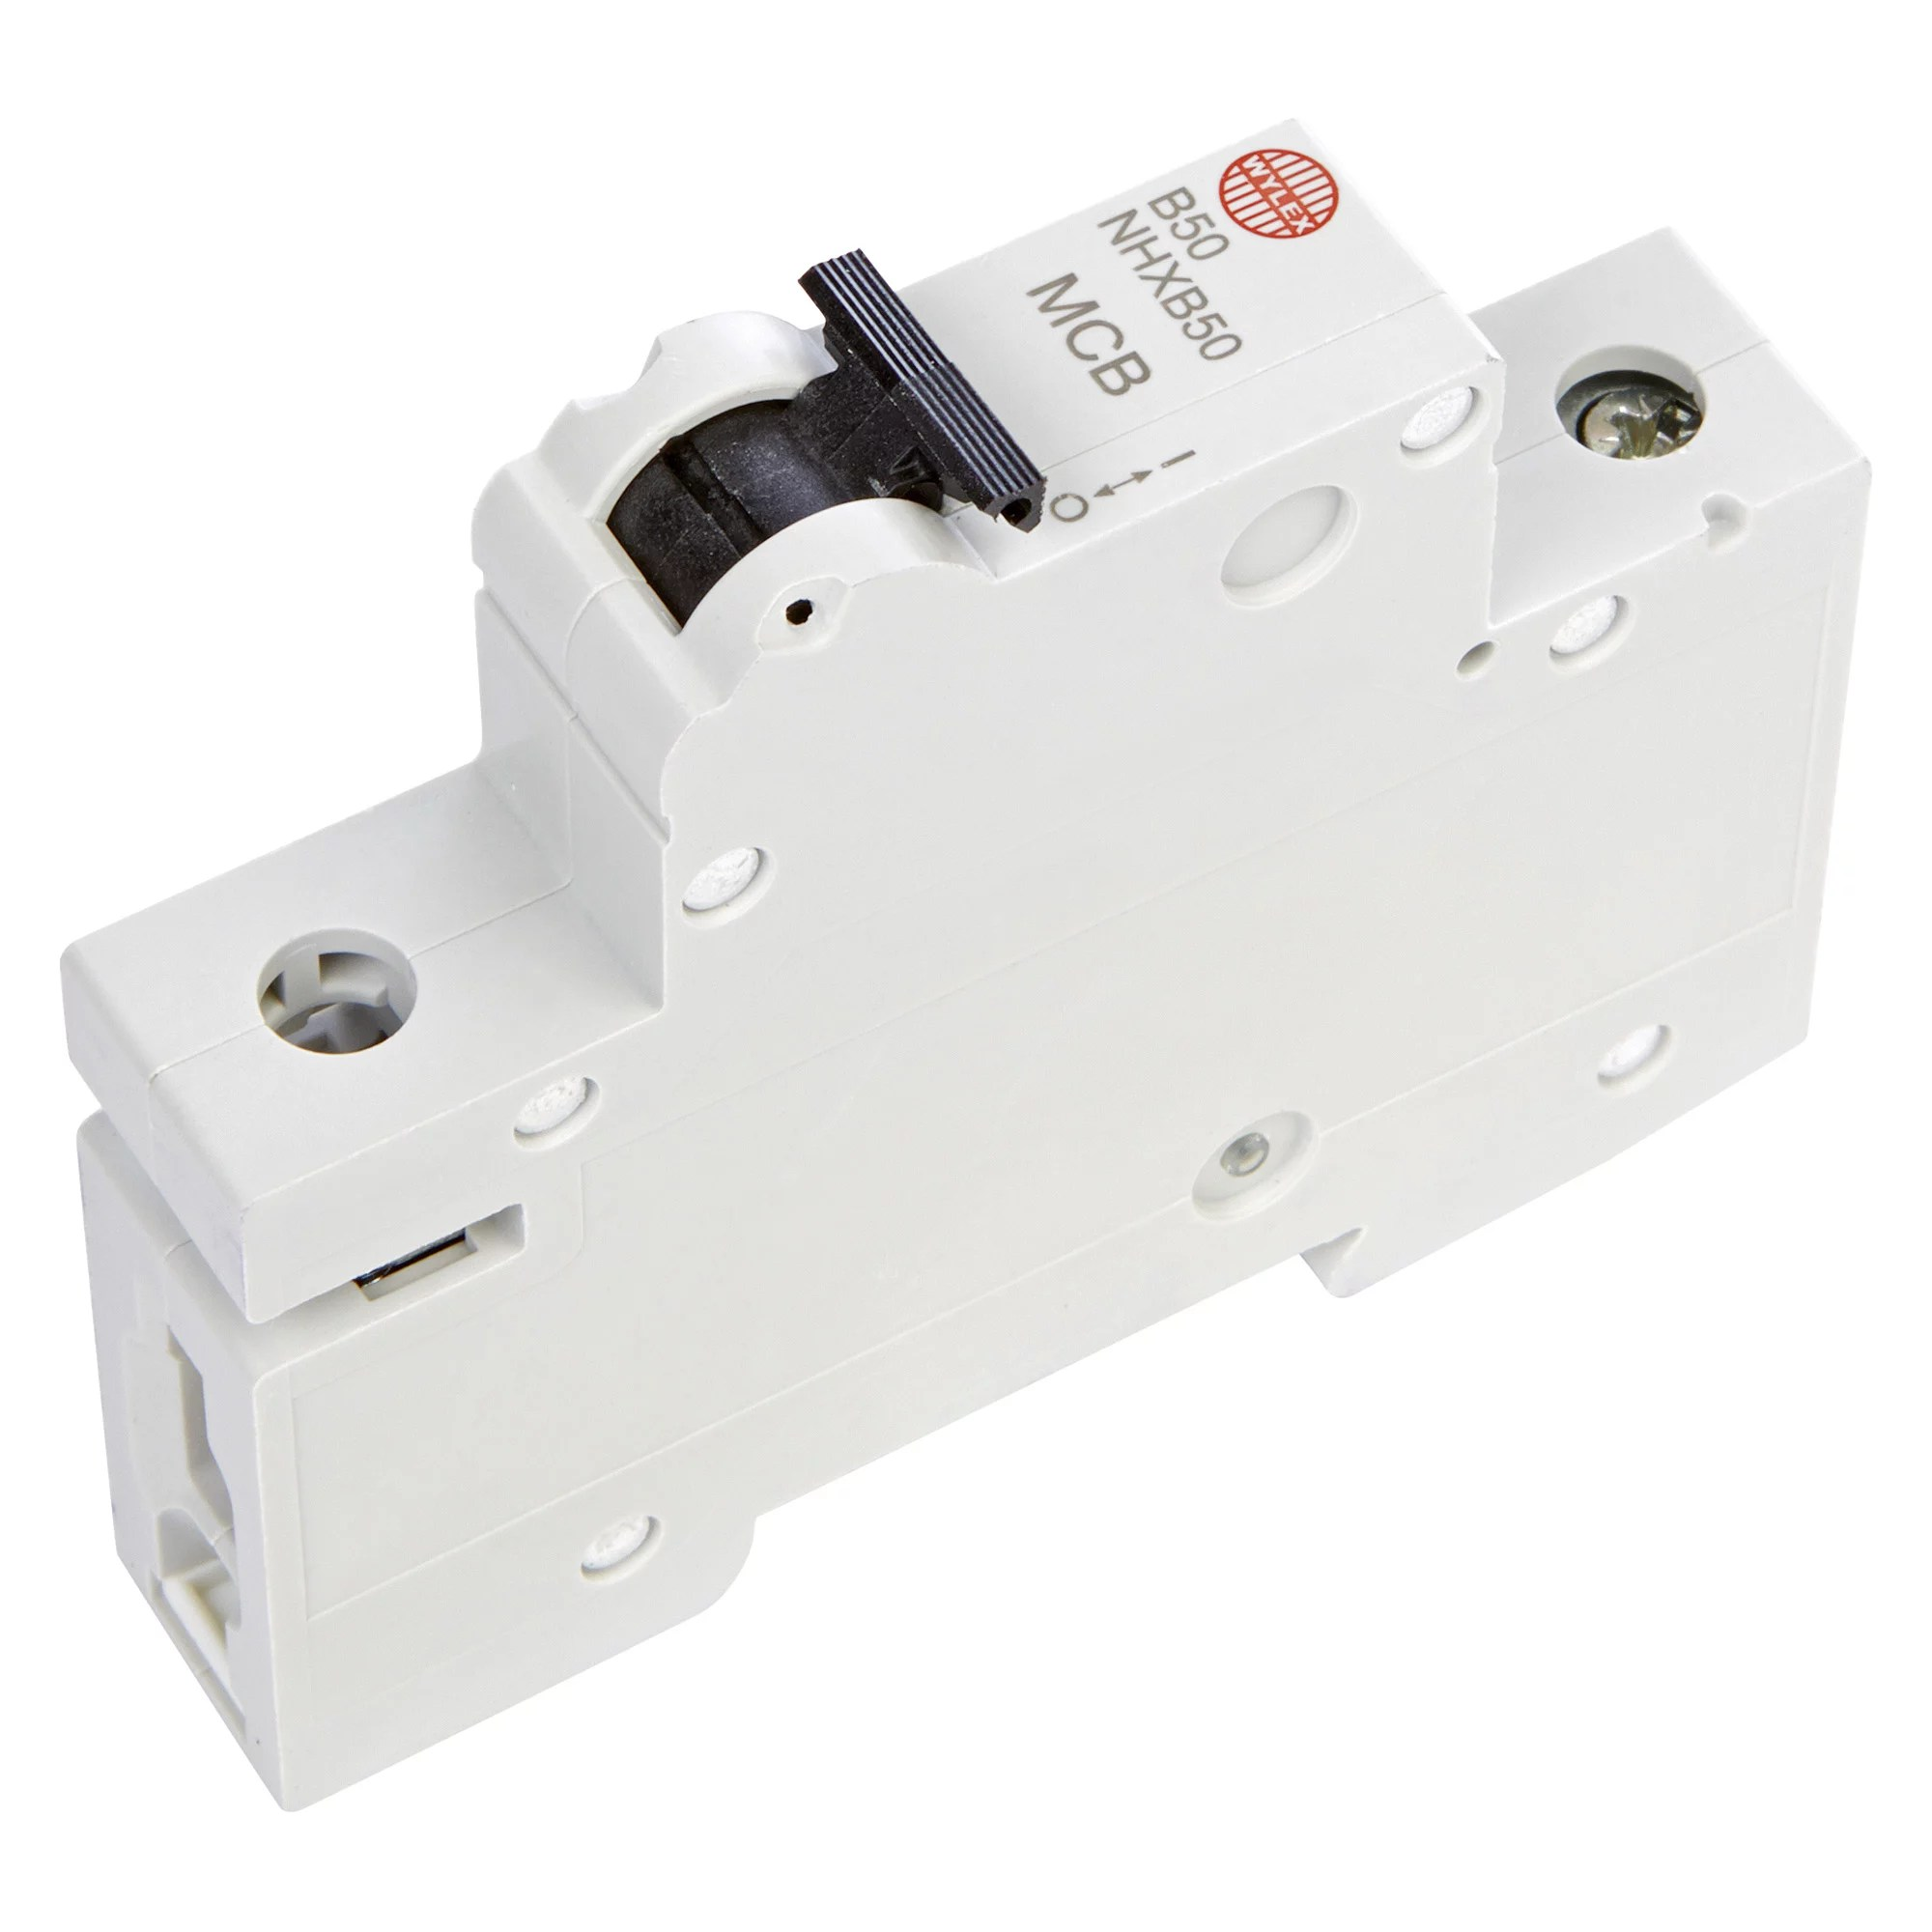 hight resolution of wylex 50a miniature circuit breaker departments diy at b q 12 volt auto reset circuit breaker how